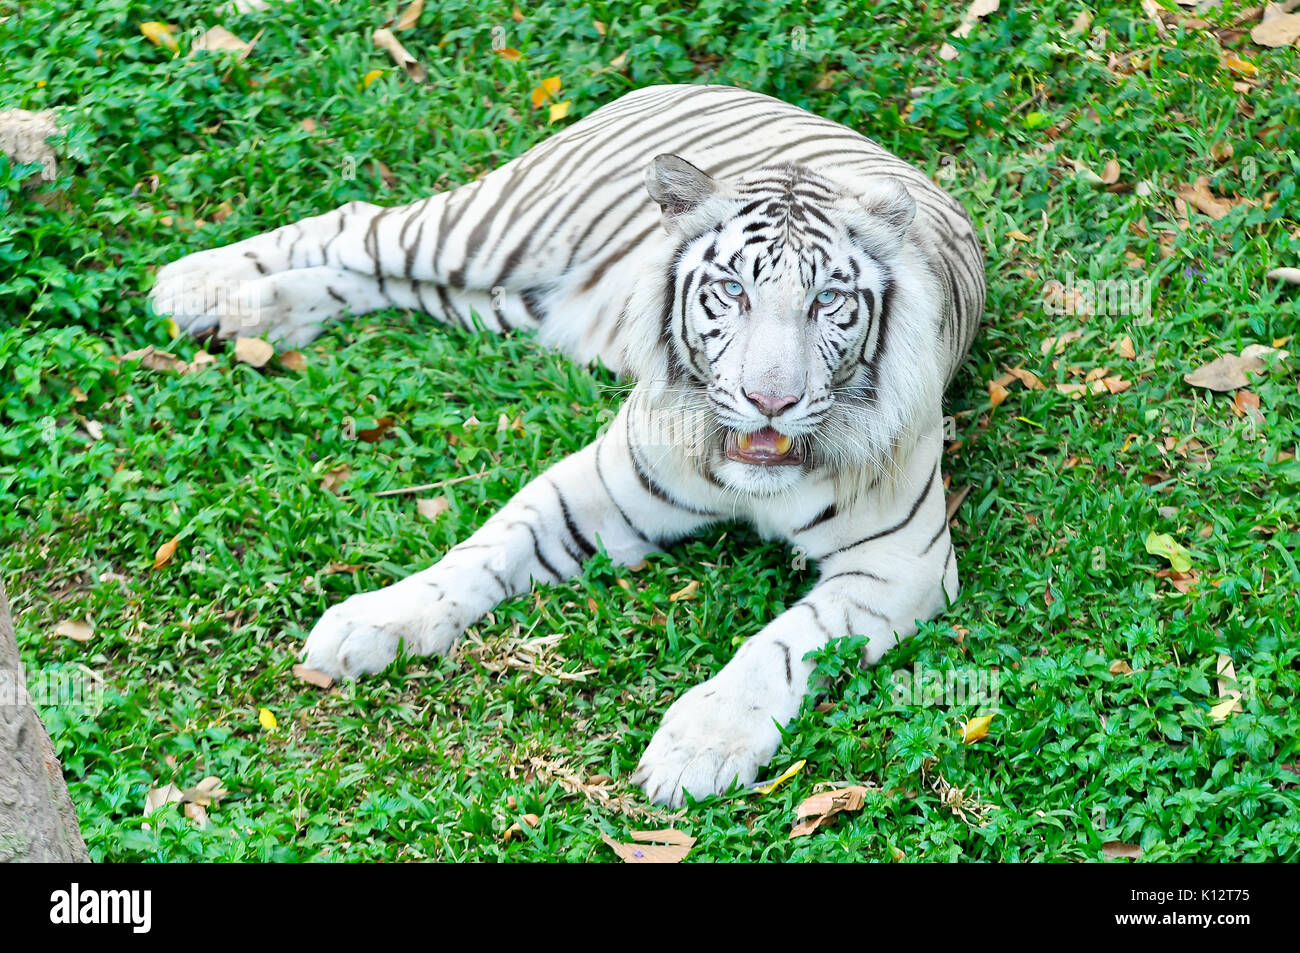 A white tiger in captivity at a zoo. The presence of stripes indicates it is not a true albino. - Stock Image